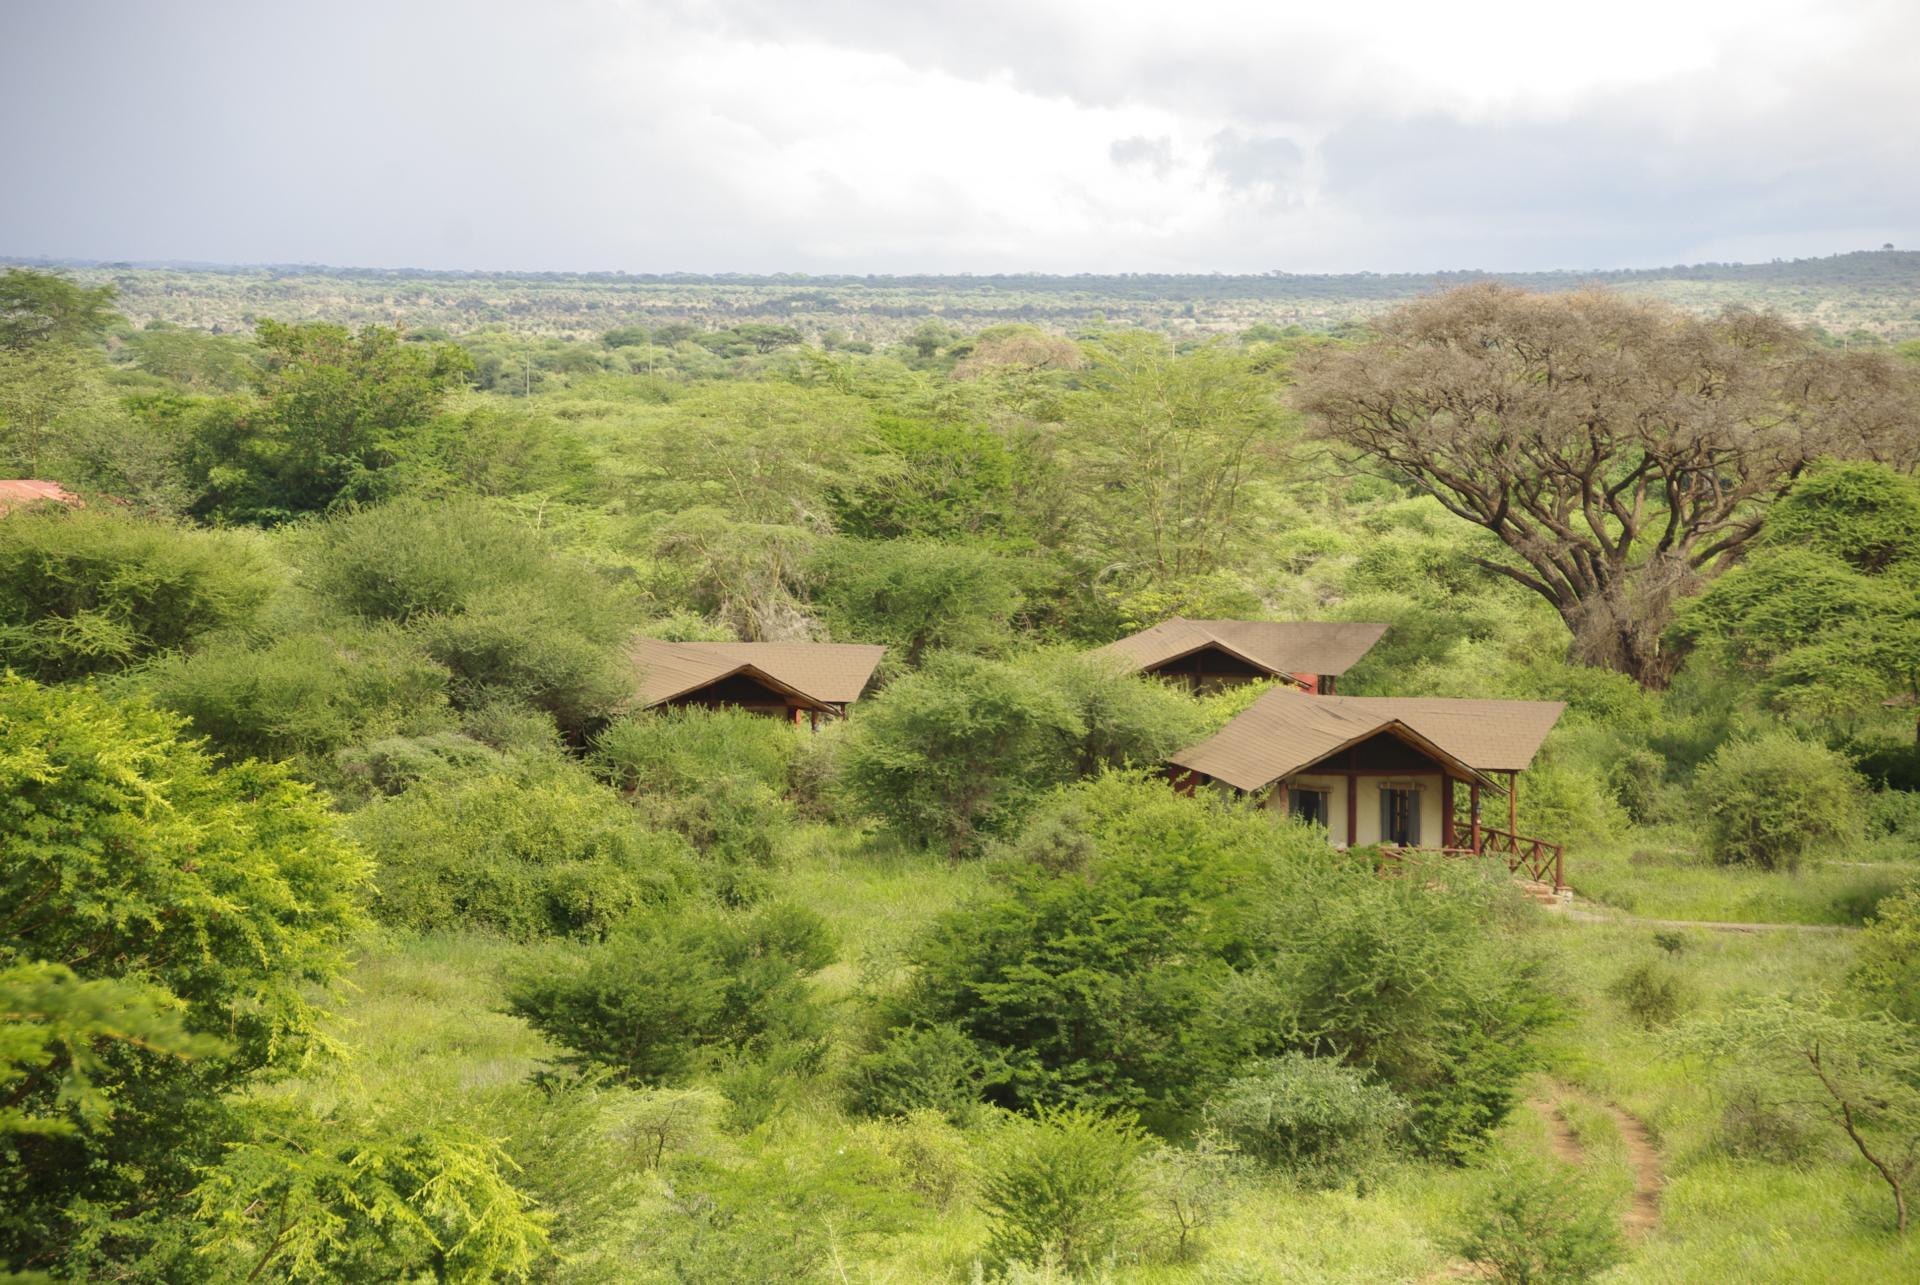 Kilima safari camp 1